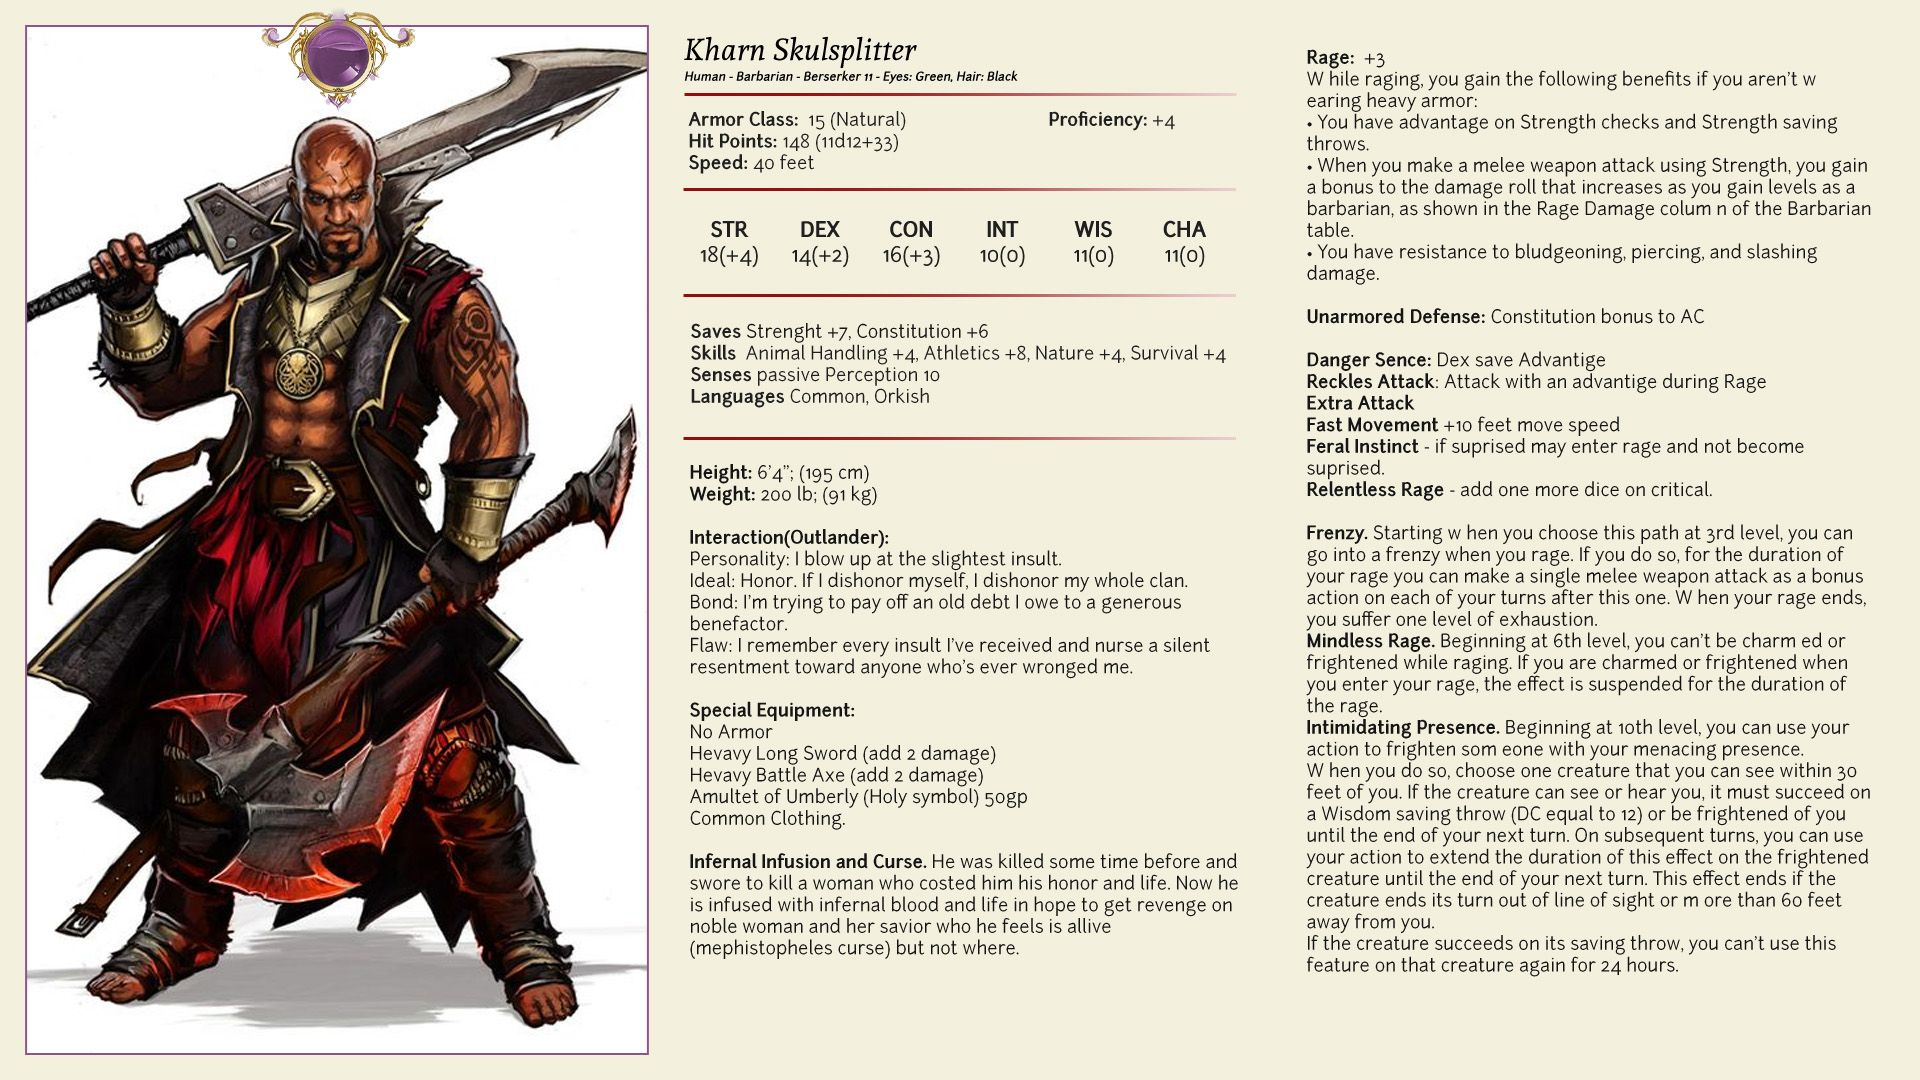 Pin by David Curp on D&D 5e NPCs in 2019 | Dungeons, dragons